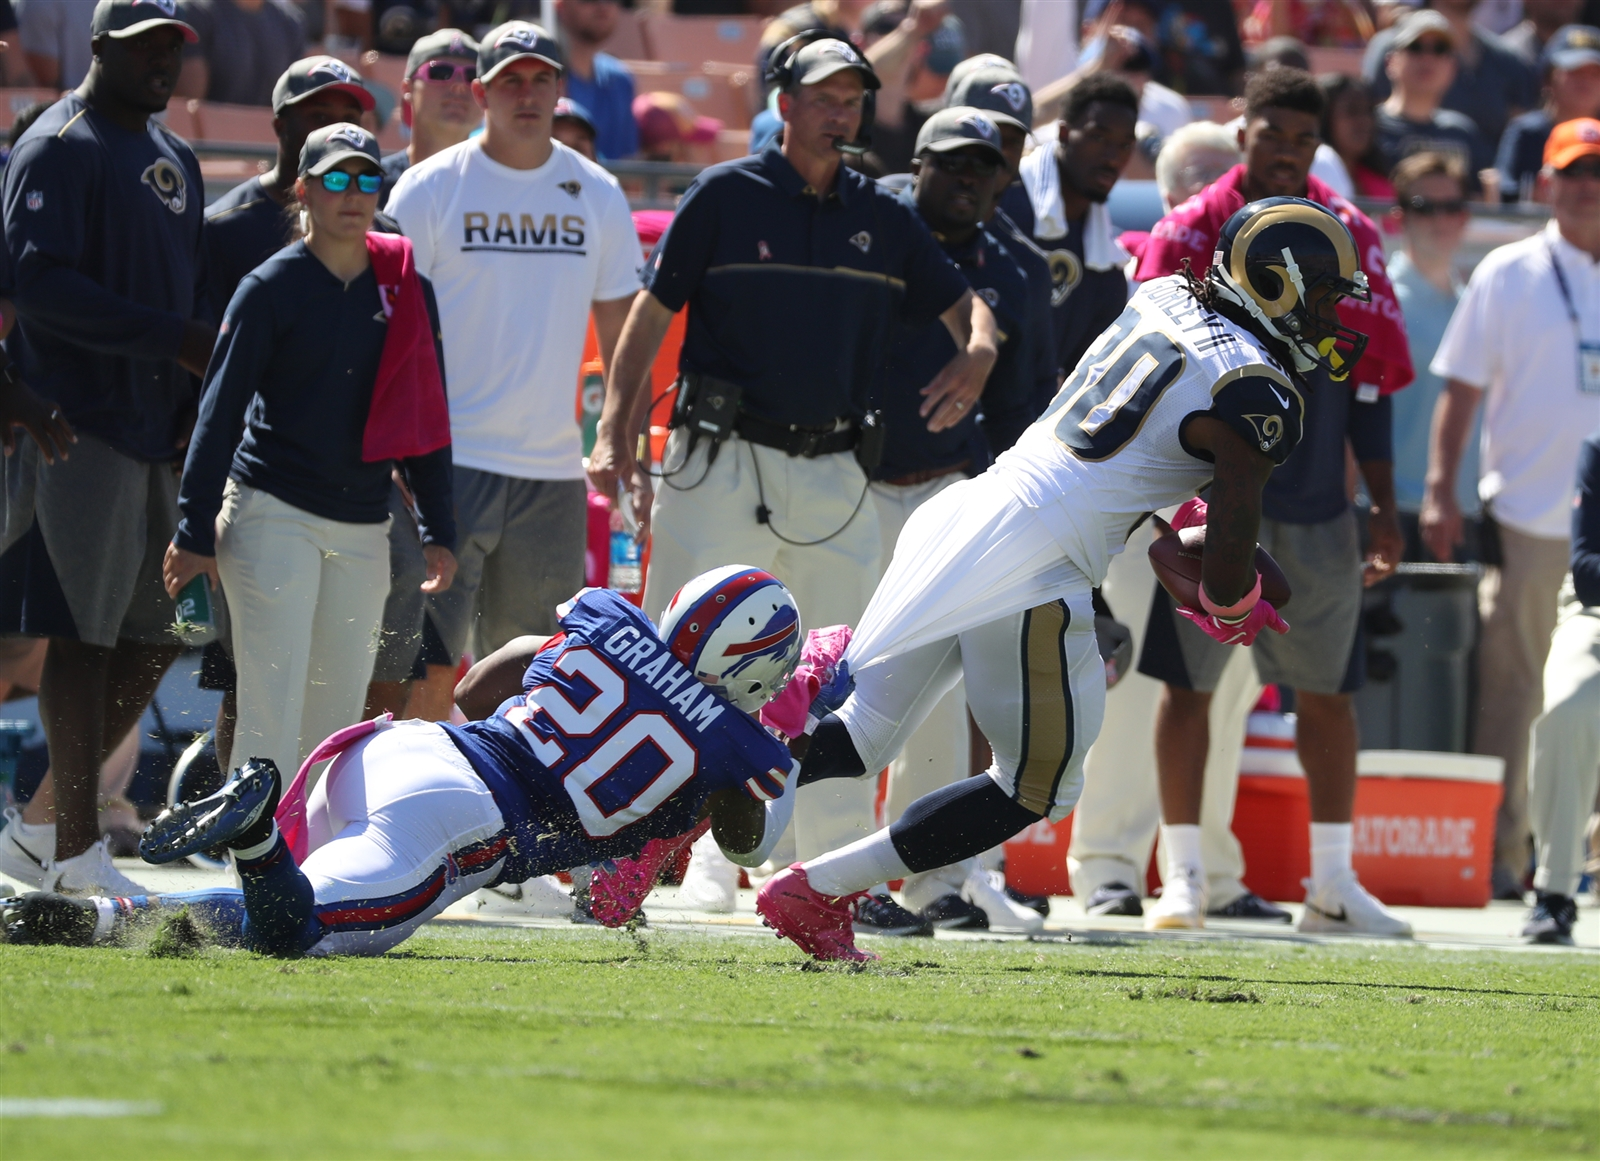 Bills safety Aaron Williams (20) tackles Los Angeles Rams running back Todd Gurley (30) in the first quarter at the Los Angeles Memorial Colliseum.